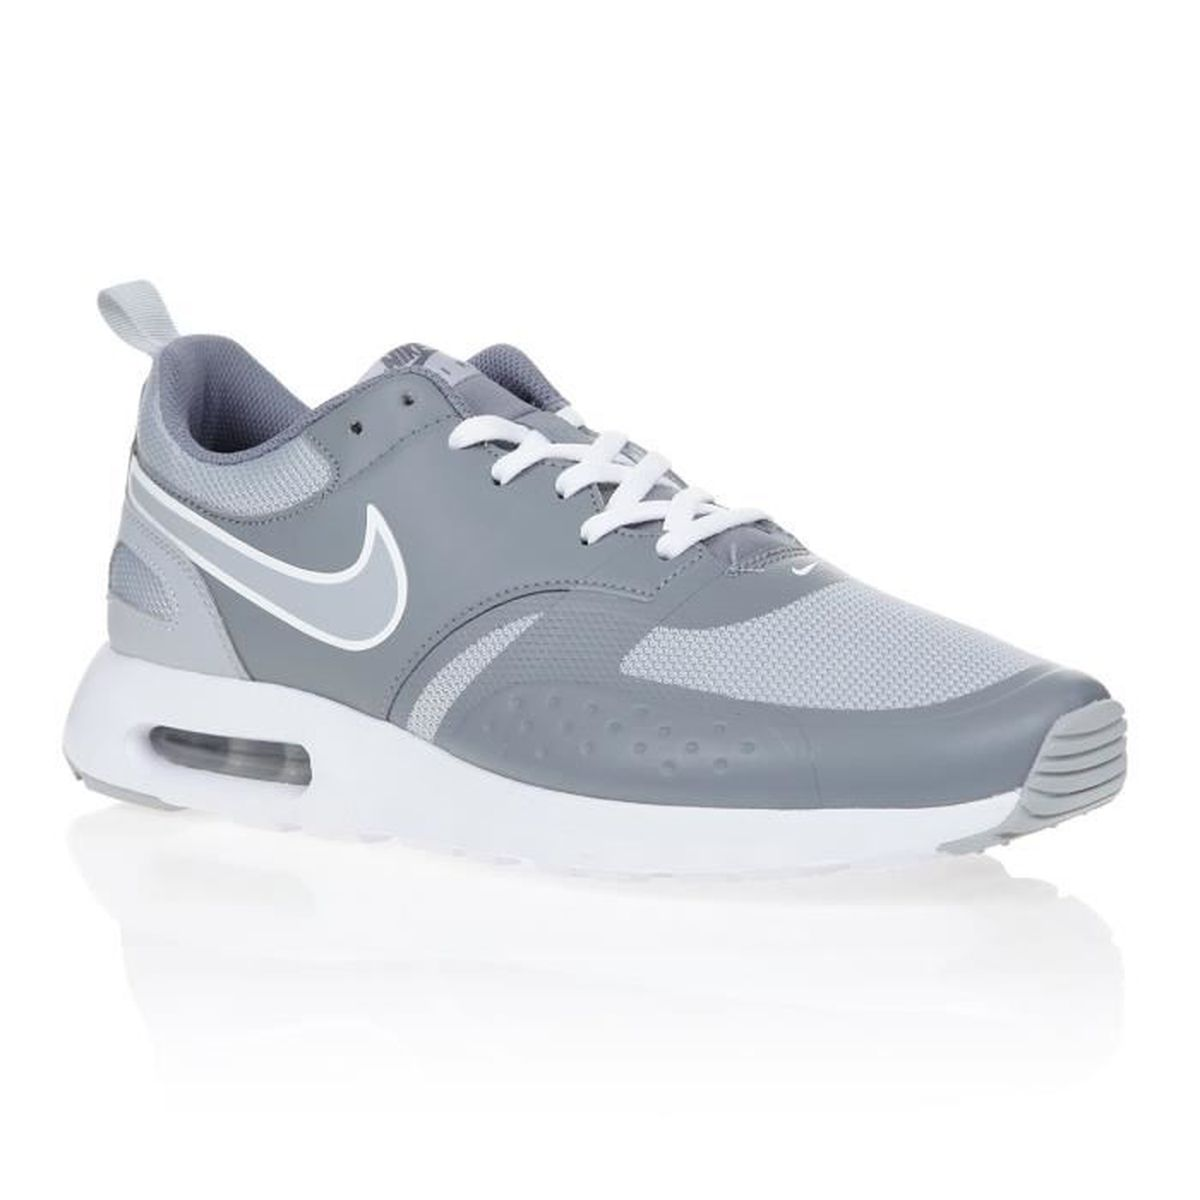 buy popular dbe91 2907b Air max homme gris